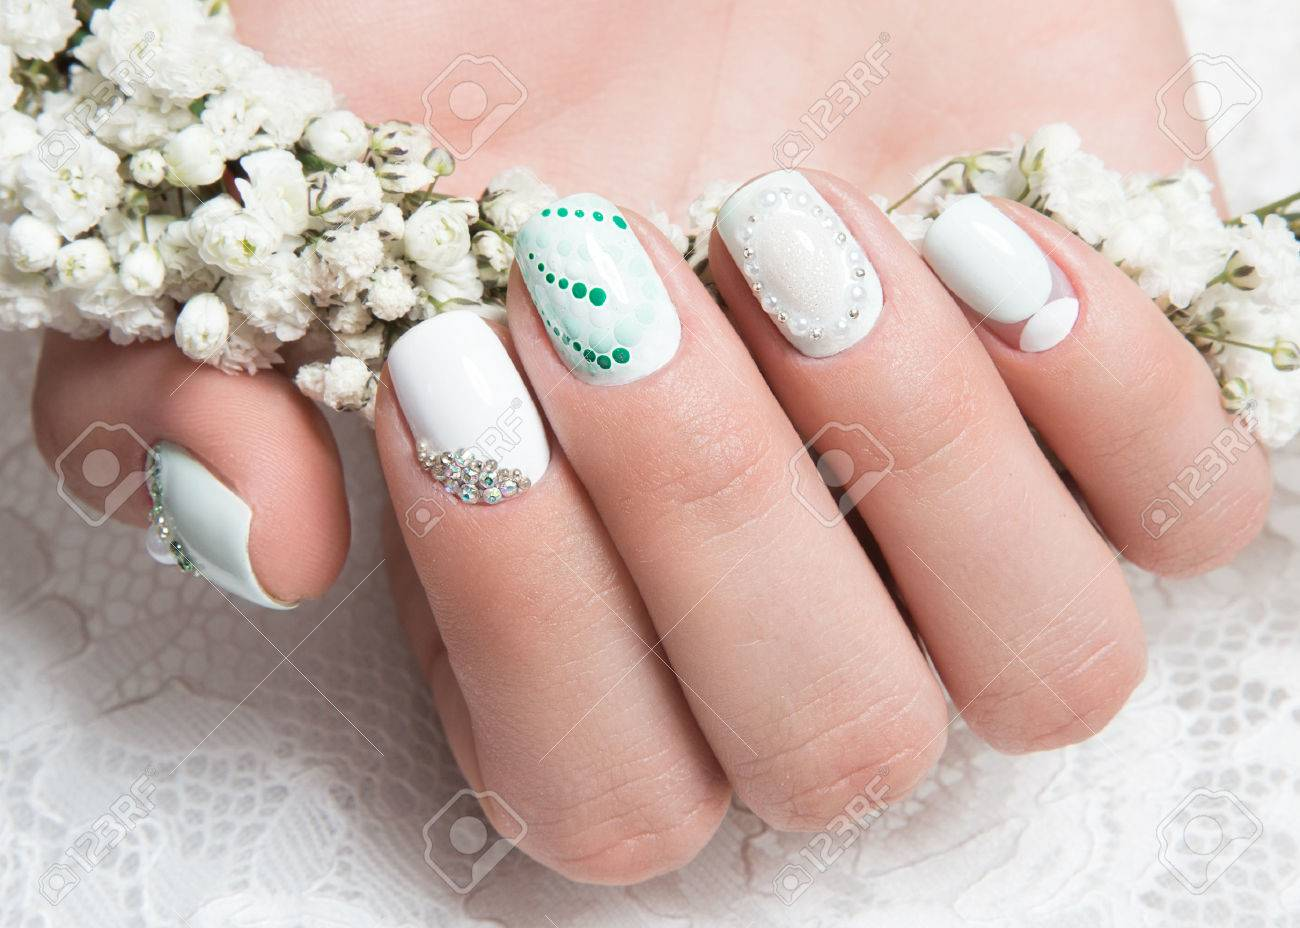 Wedding manicure for the bride in gentle tones with flowers wedding manicure for the bride in gentle tones with flowers nail design stock photo prinsesfo Images